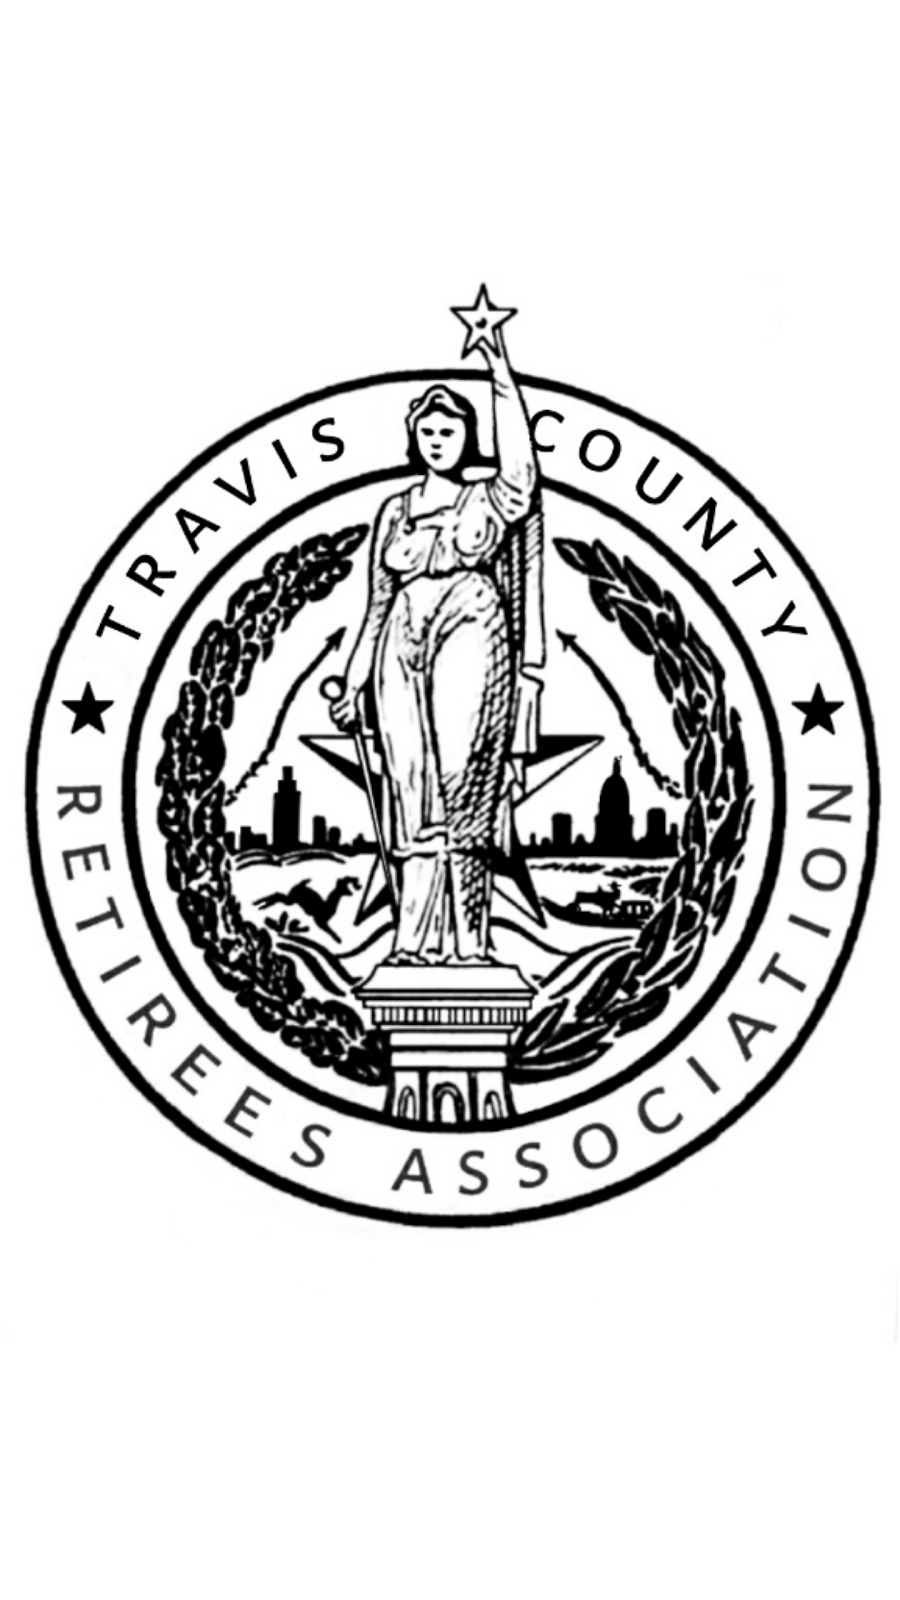 Travis County Retirees Association